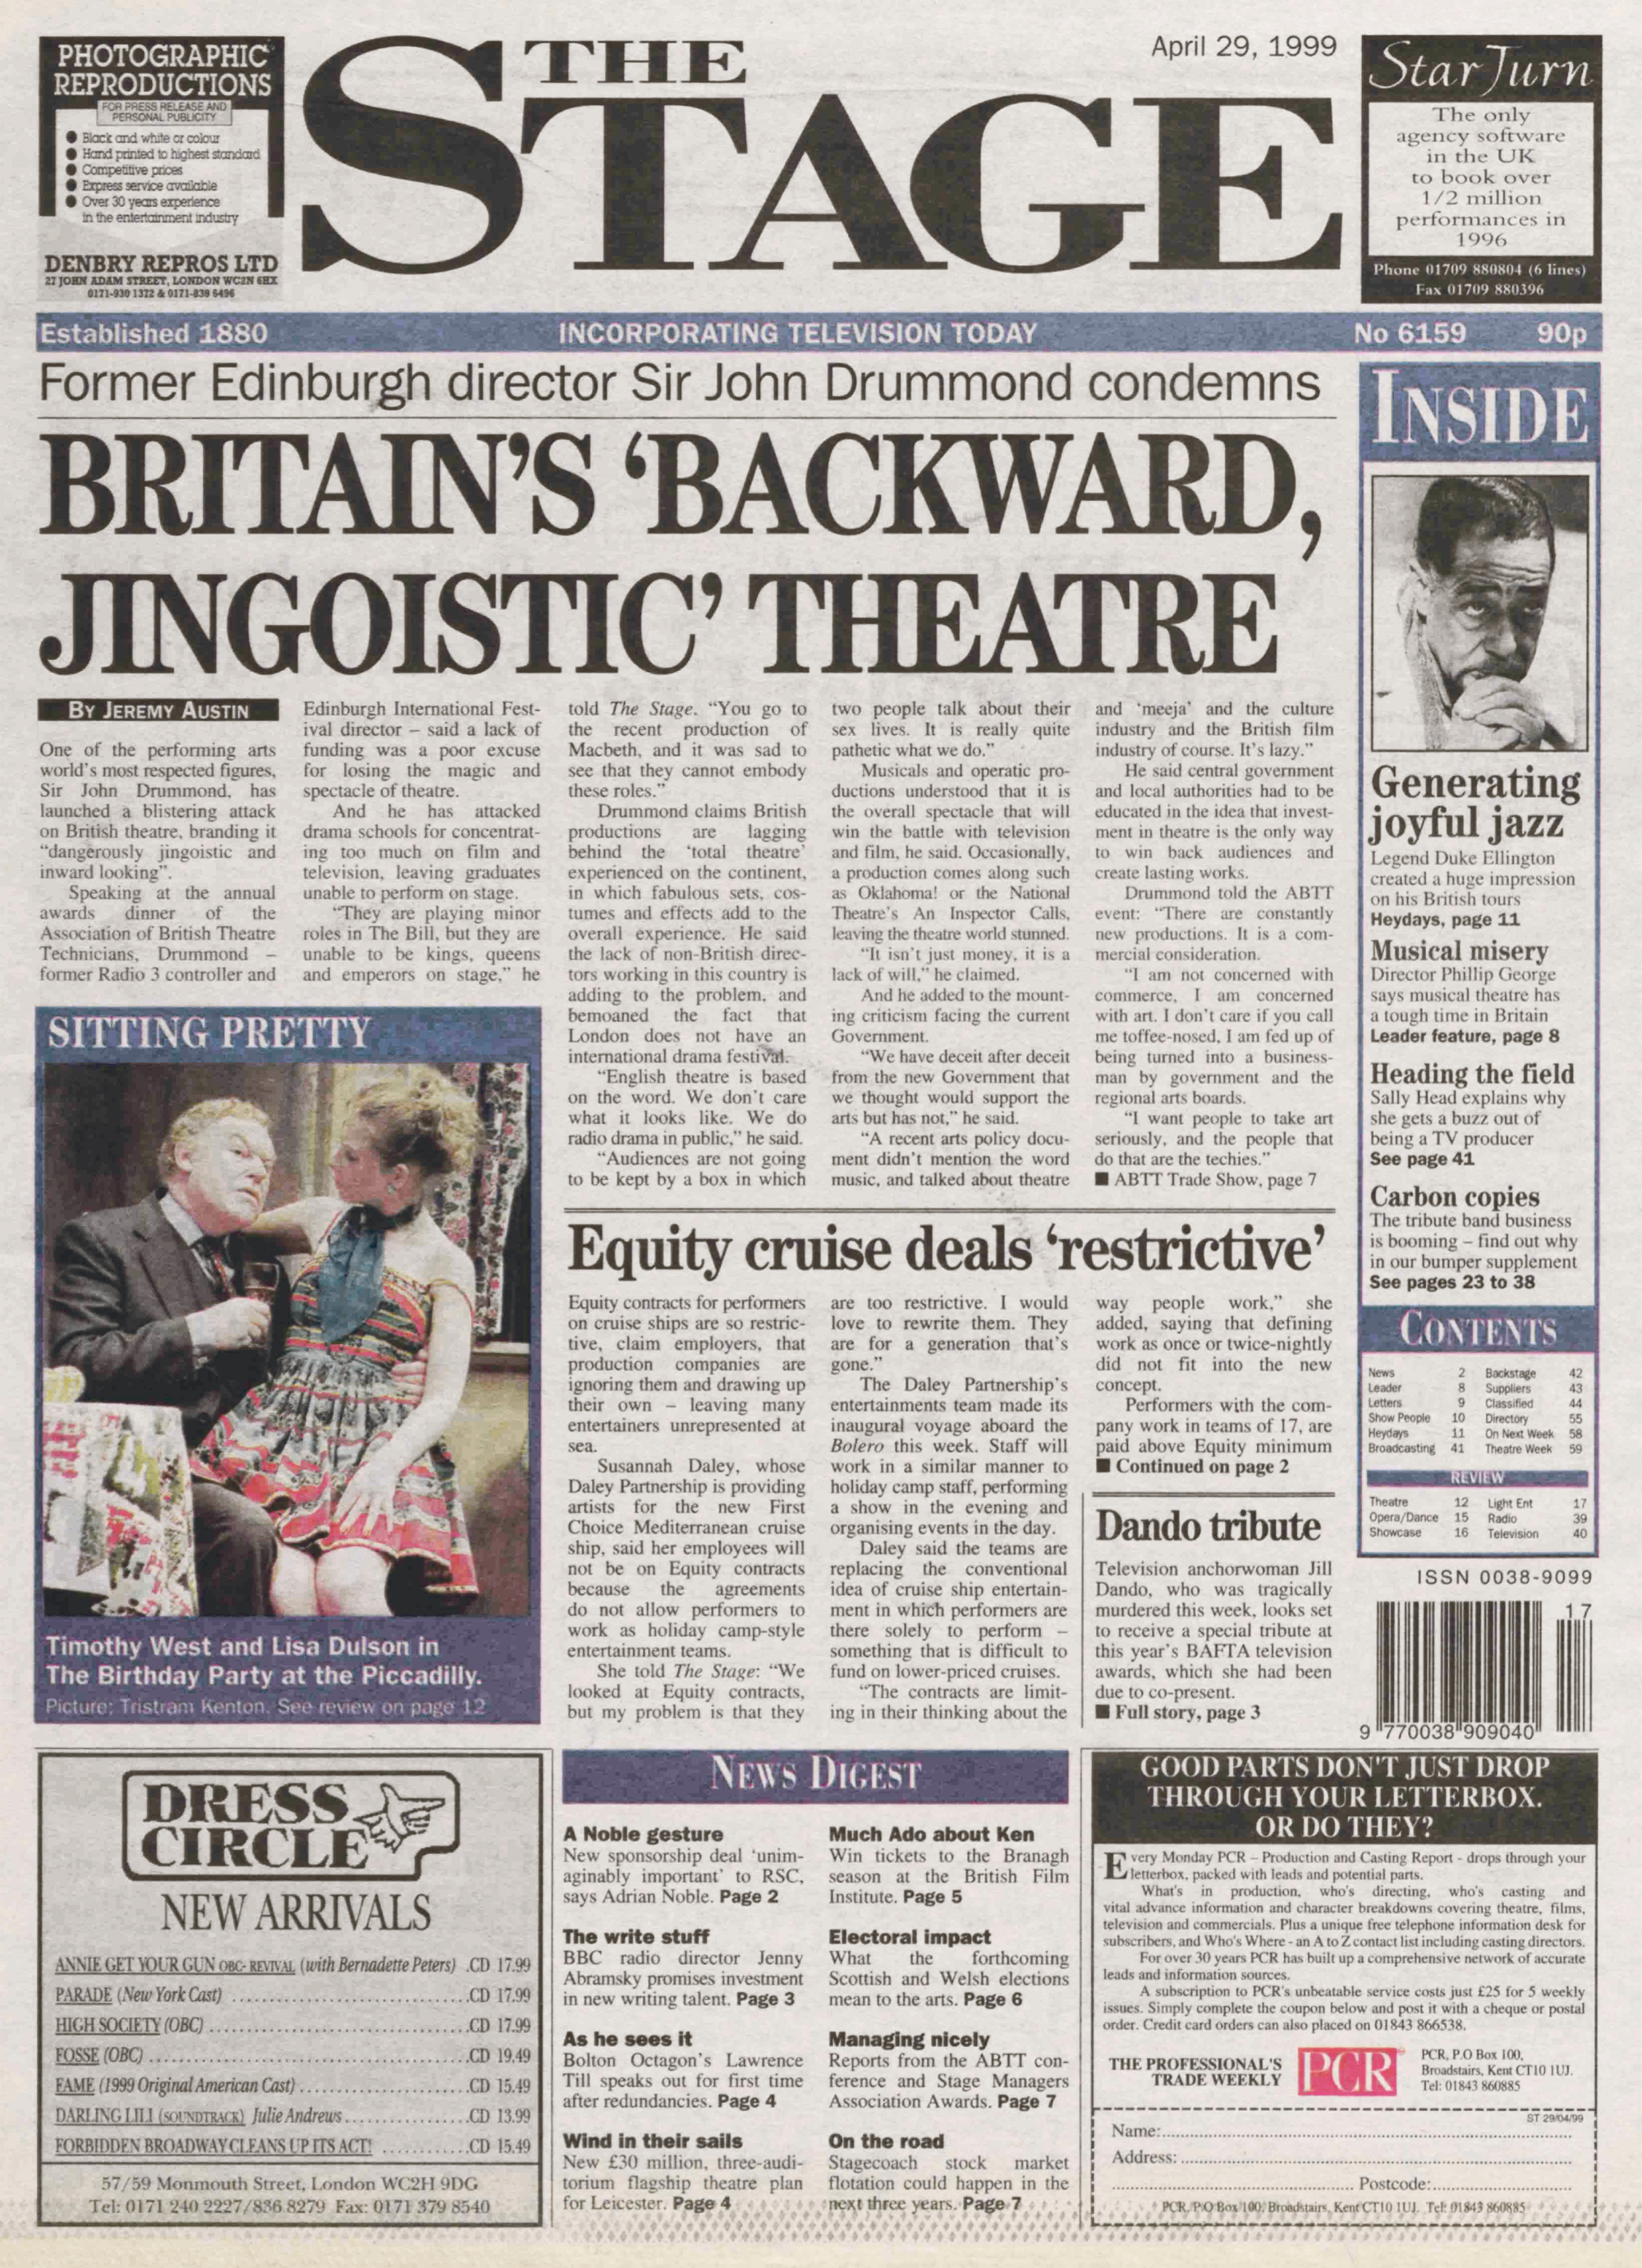 Archive | 20 years ago in The Stage April 29, 1999